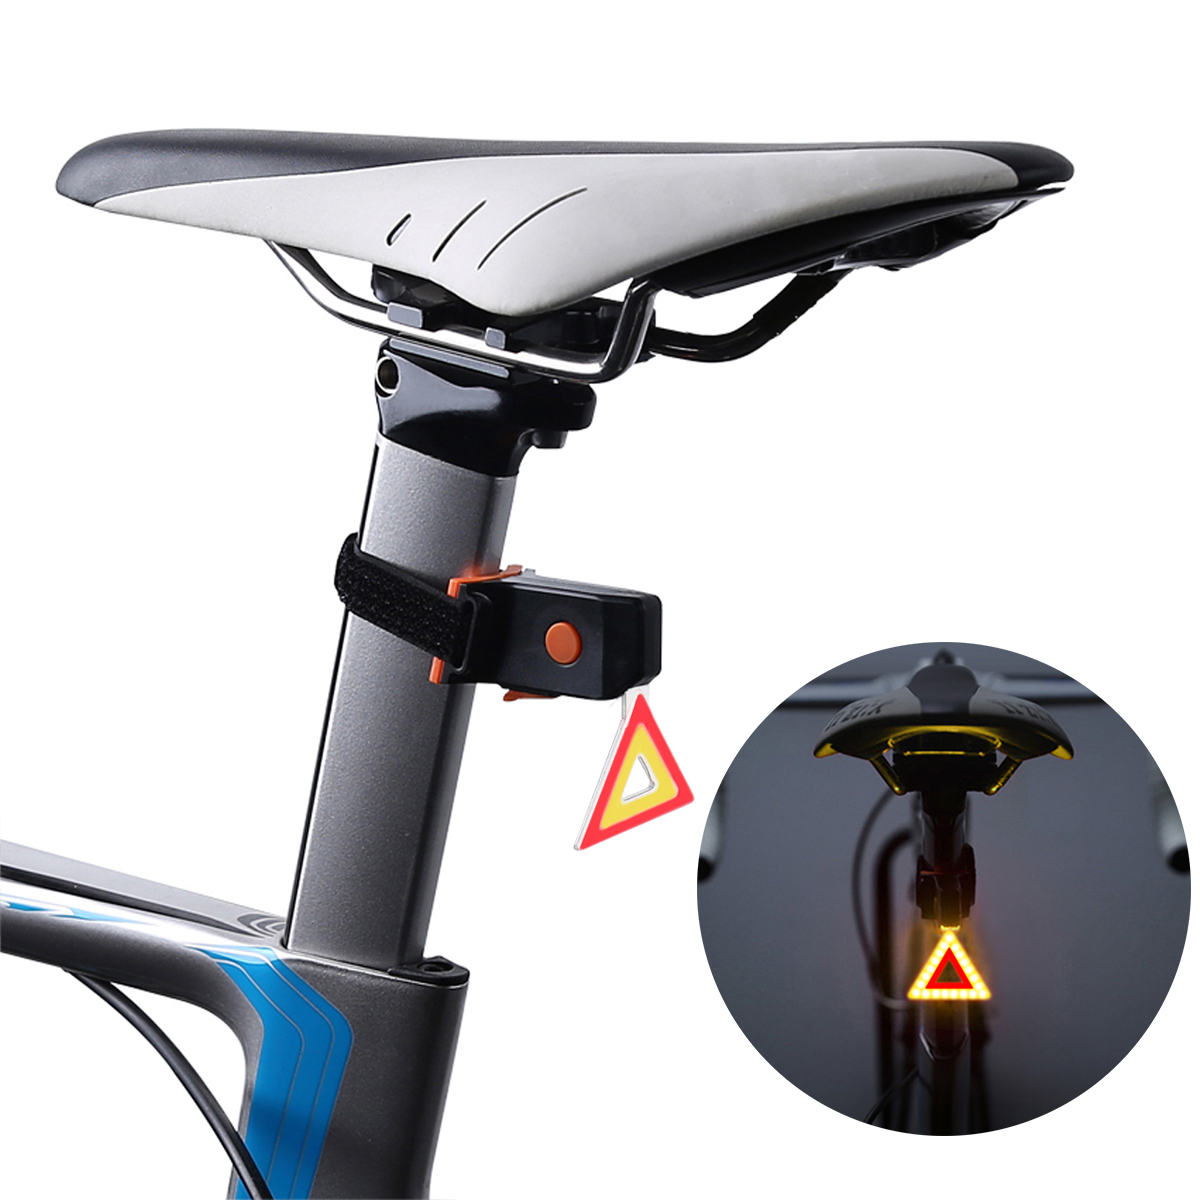 USB Rechargeable Waterproof Bicycle LED Tail Light - Triangle Style